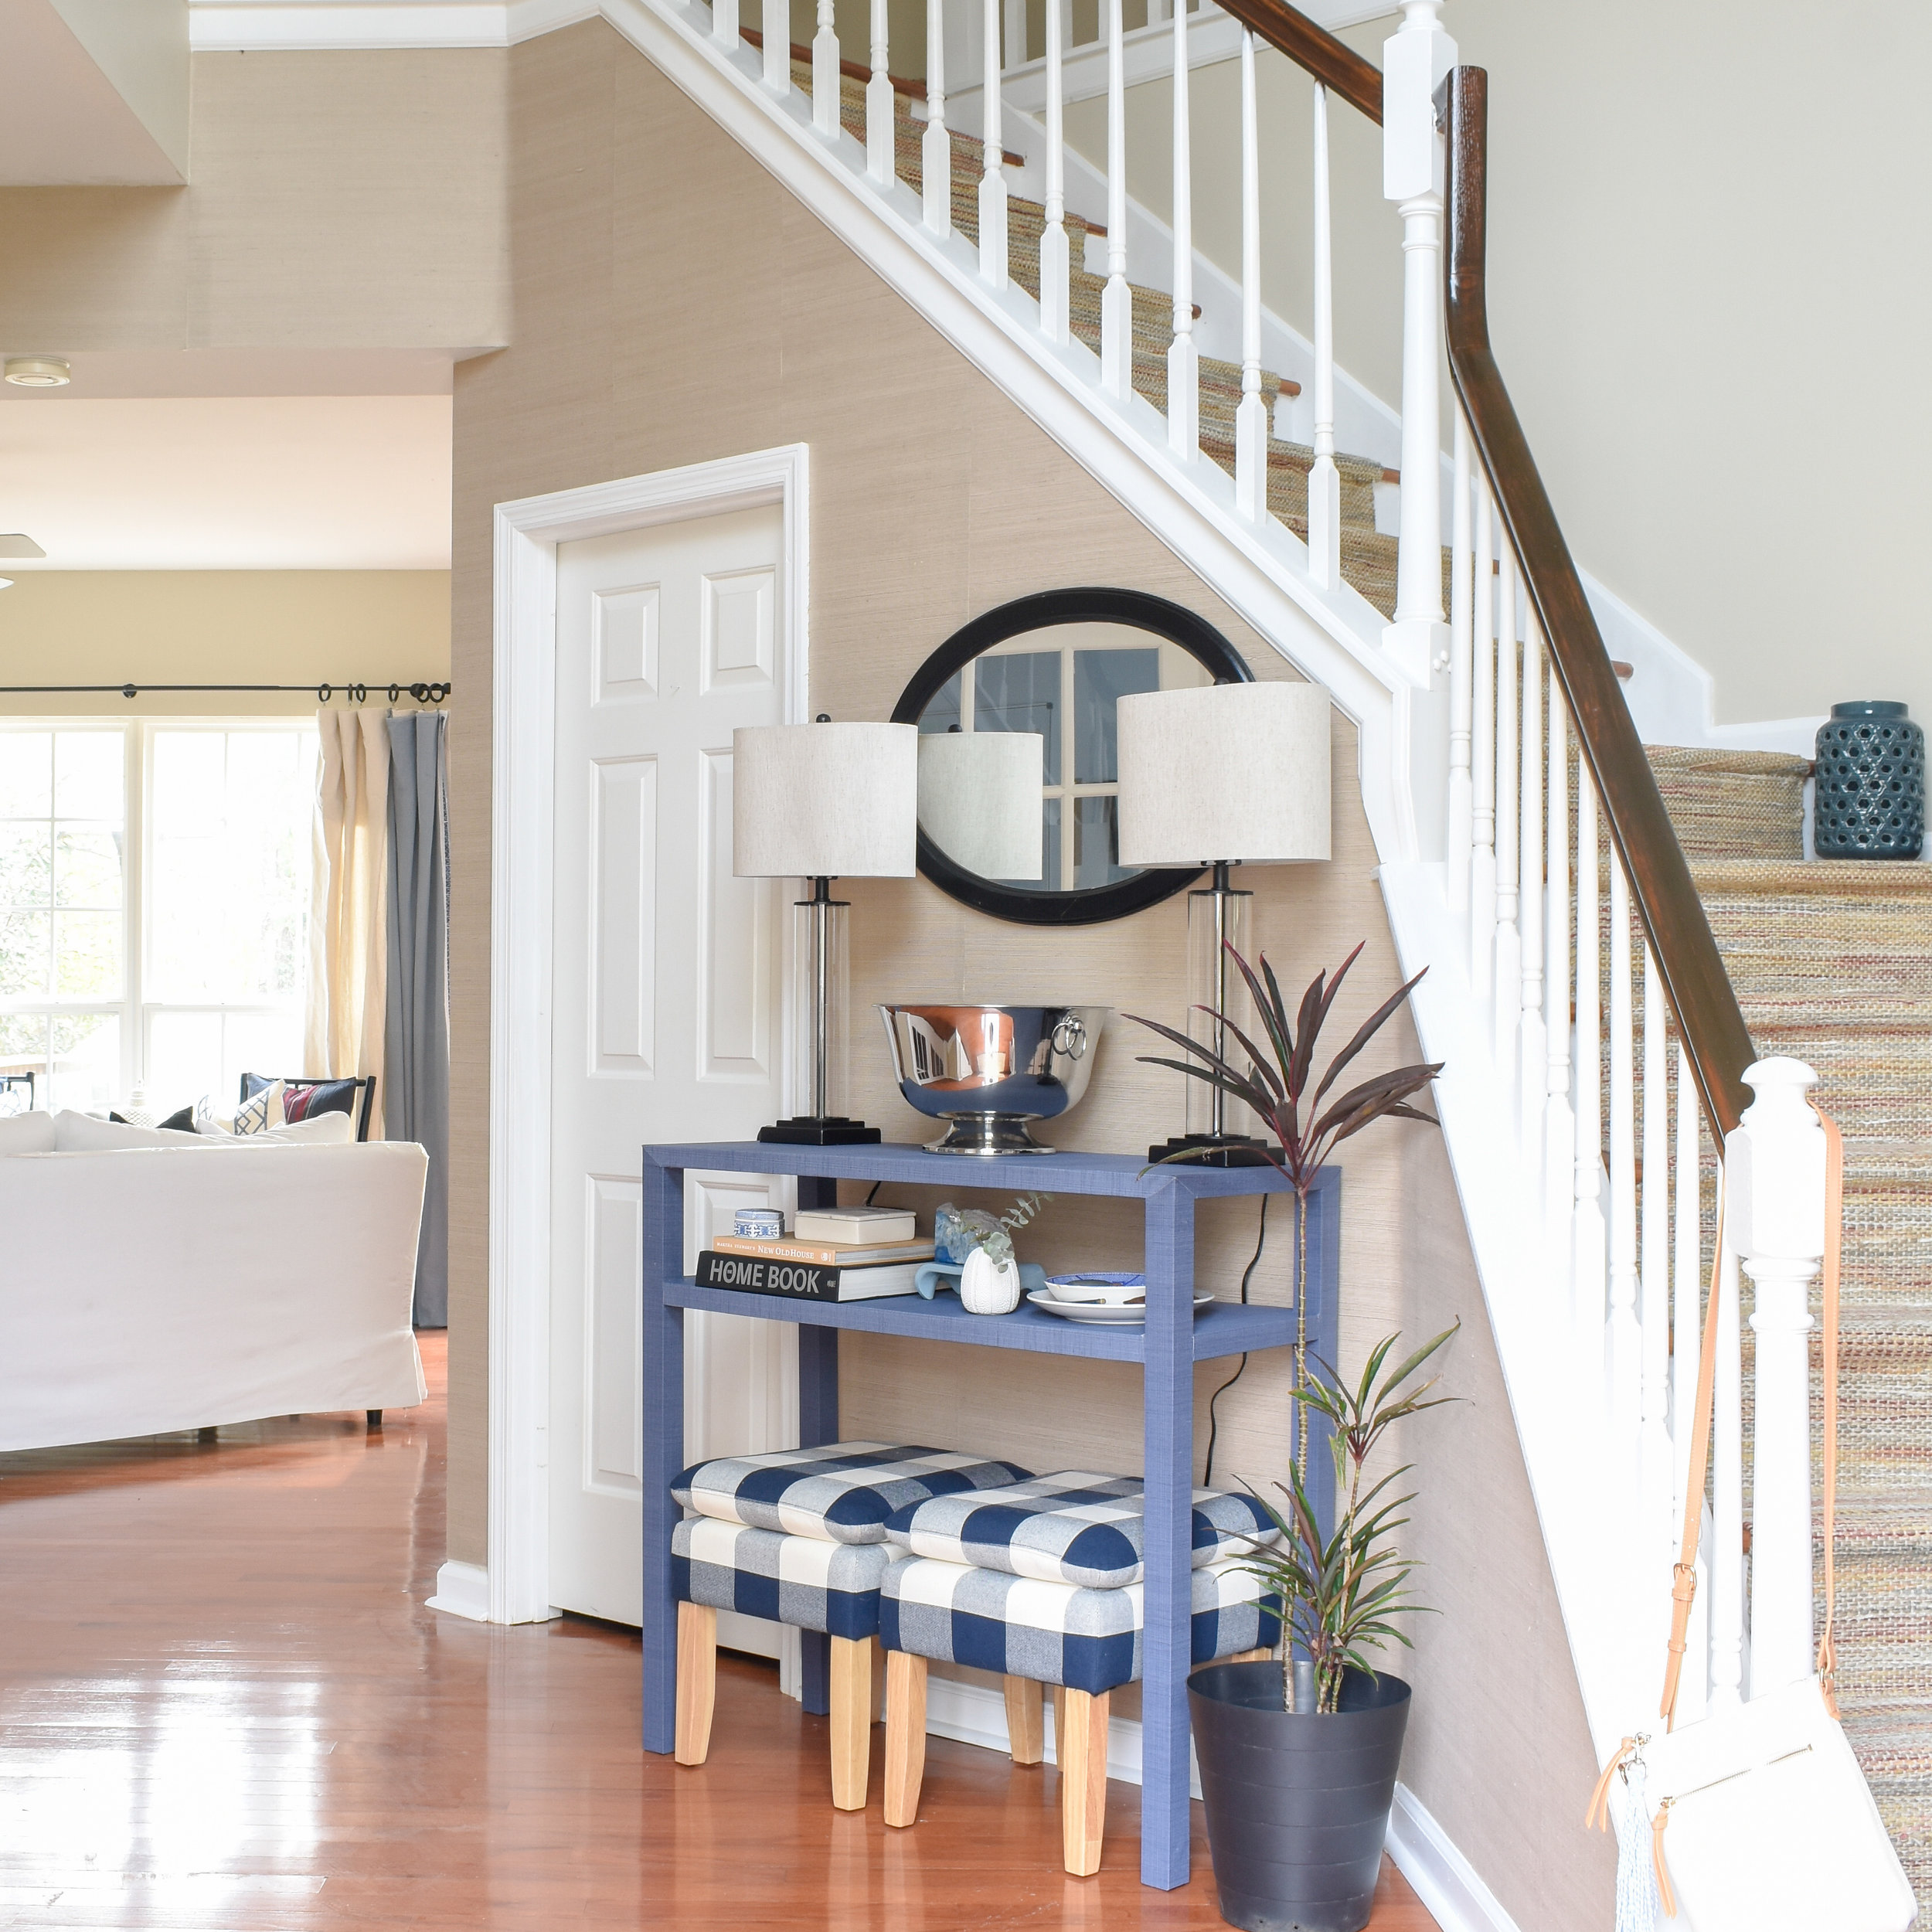 1990s suburban entryway gets a fresh update with a timeless design